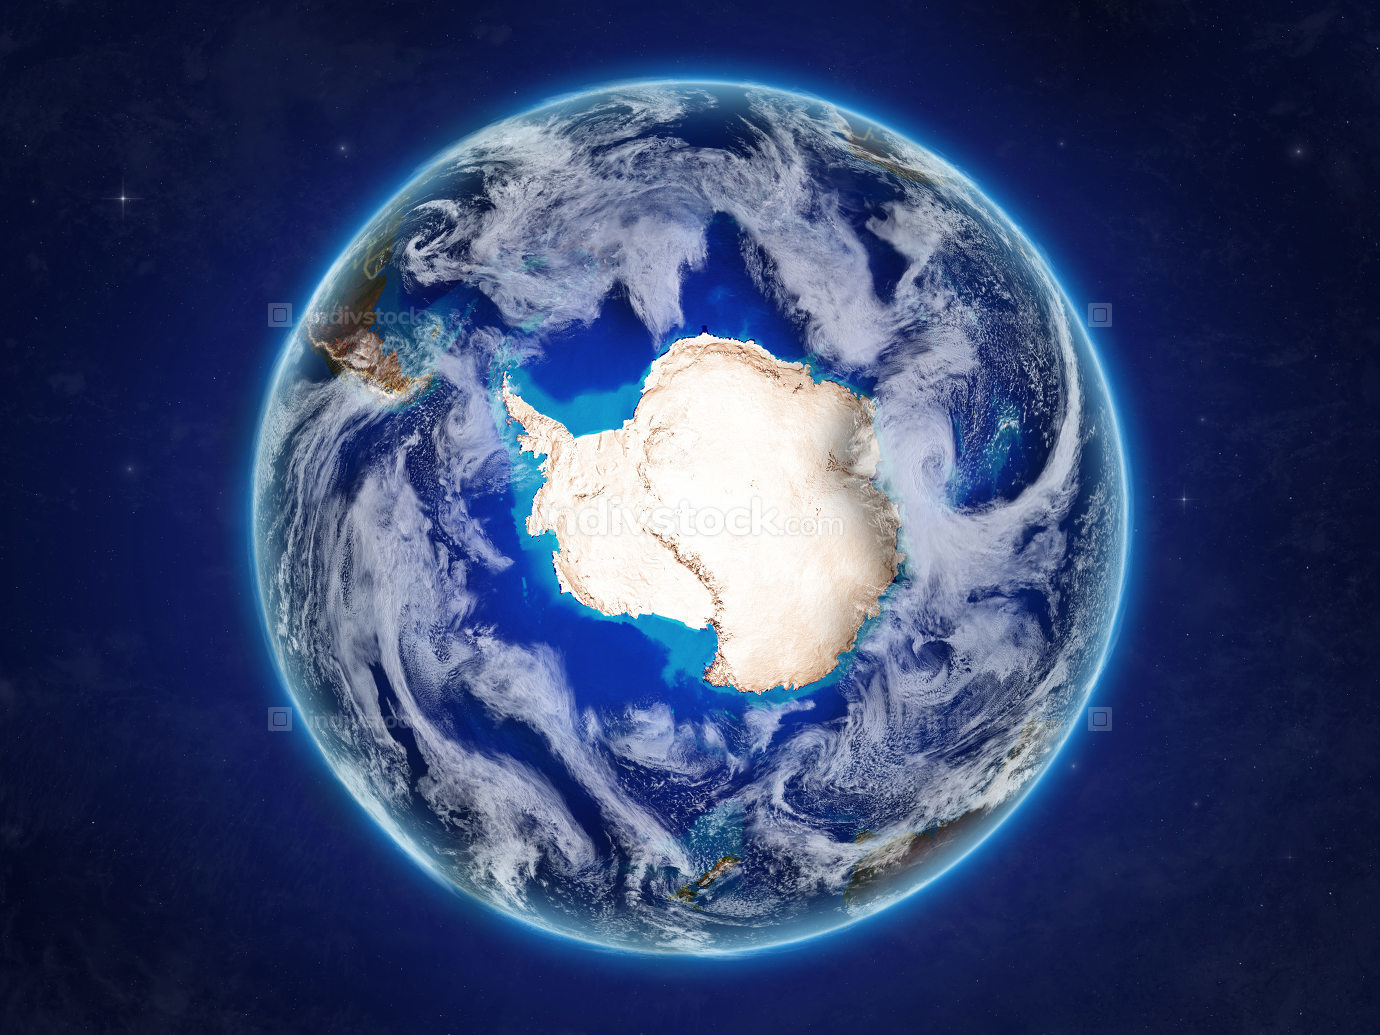 Antarctica on Earth from space